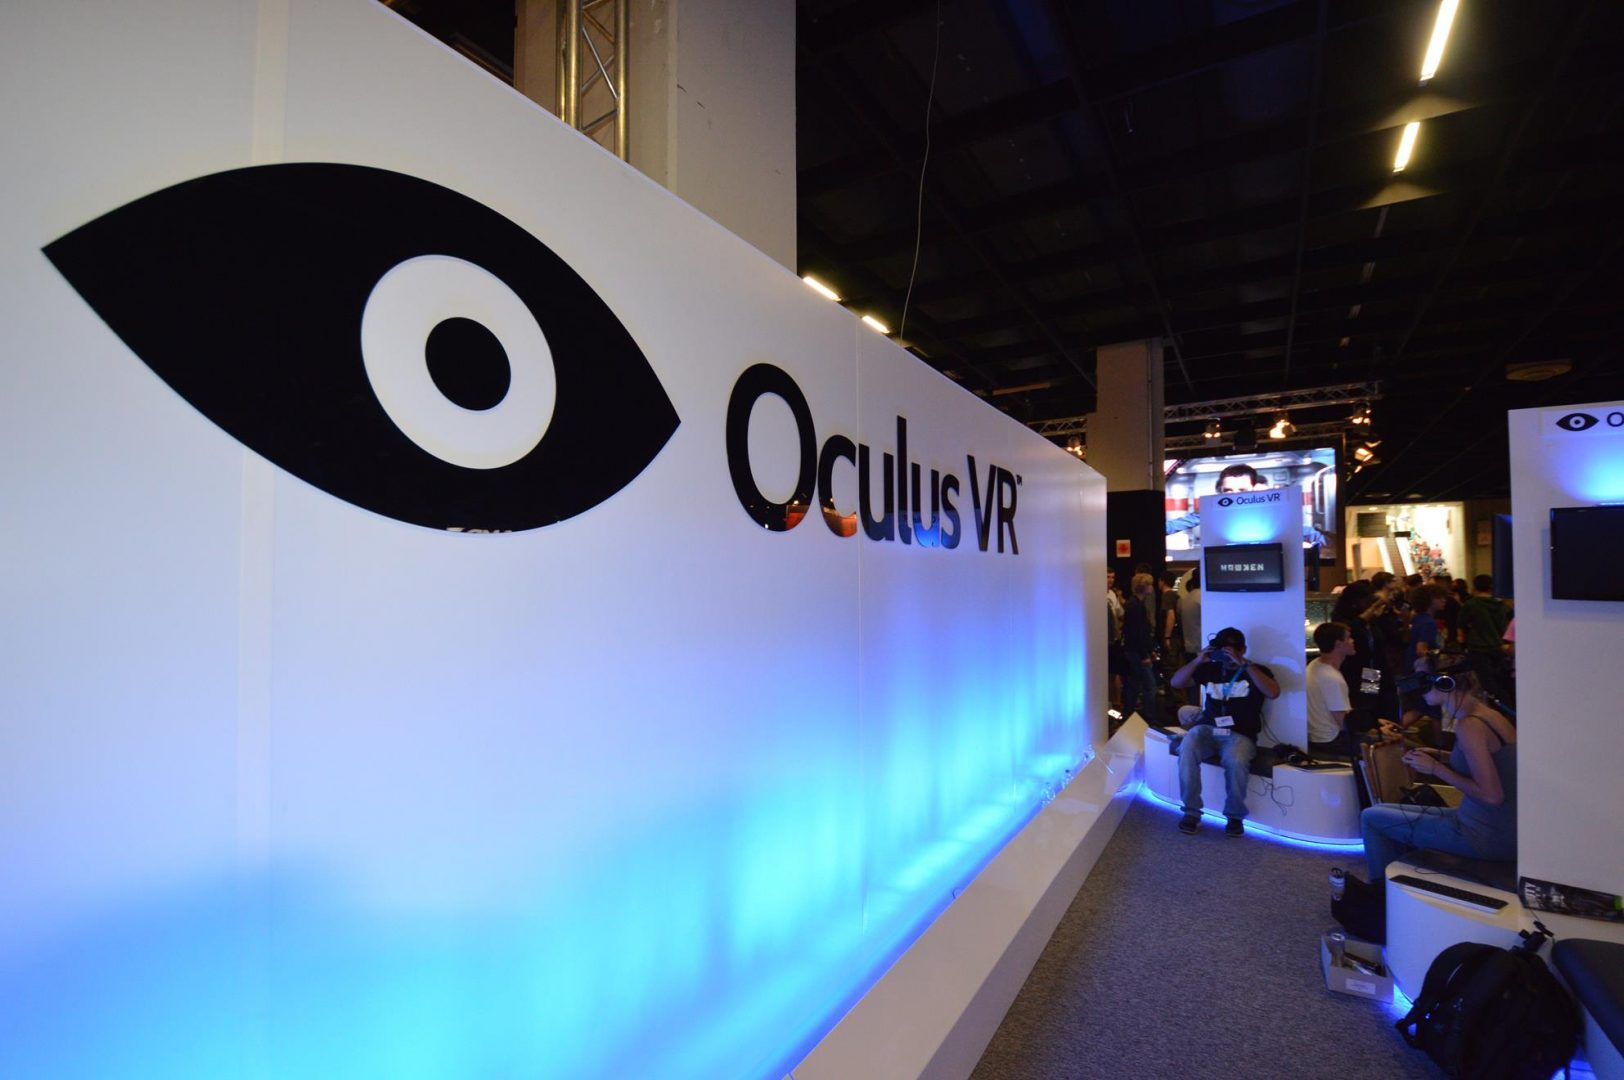 Release window is revealed for the Oculus Rift